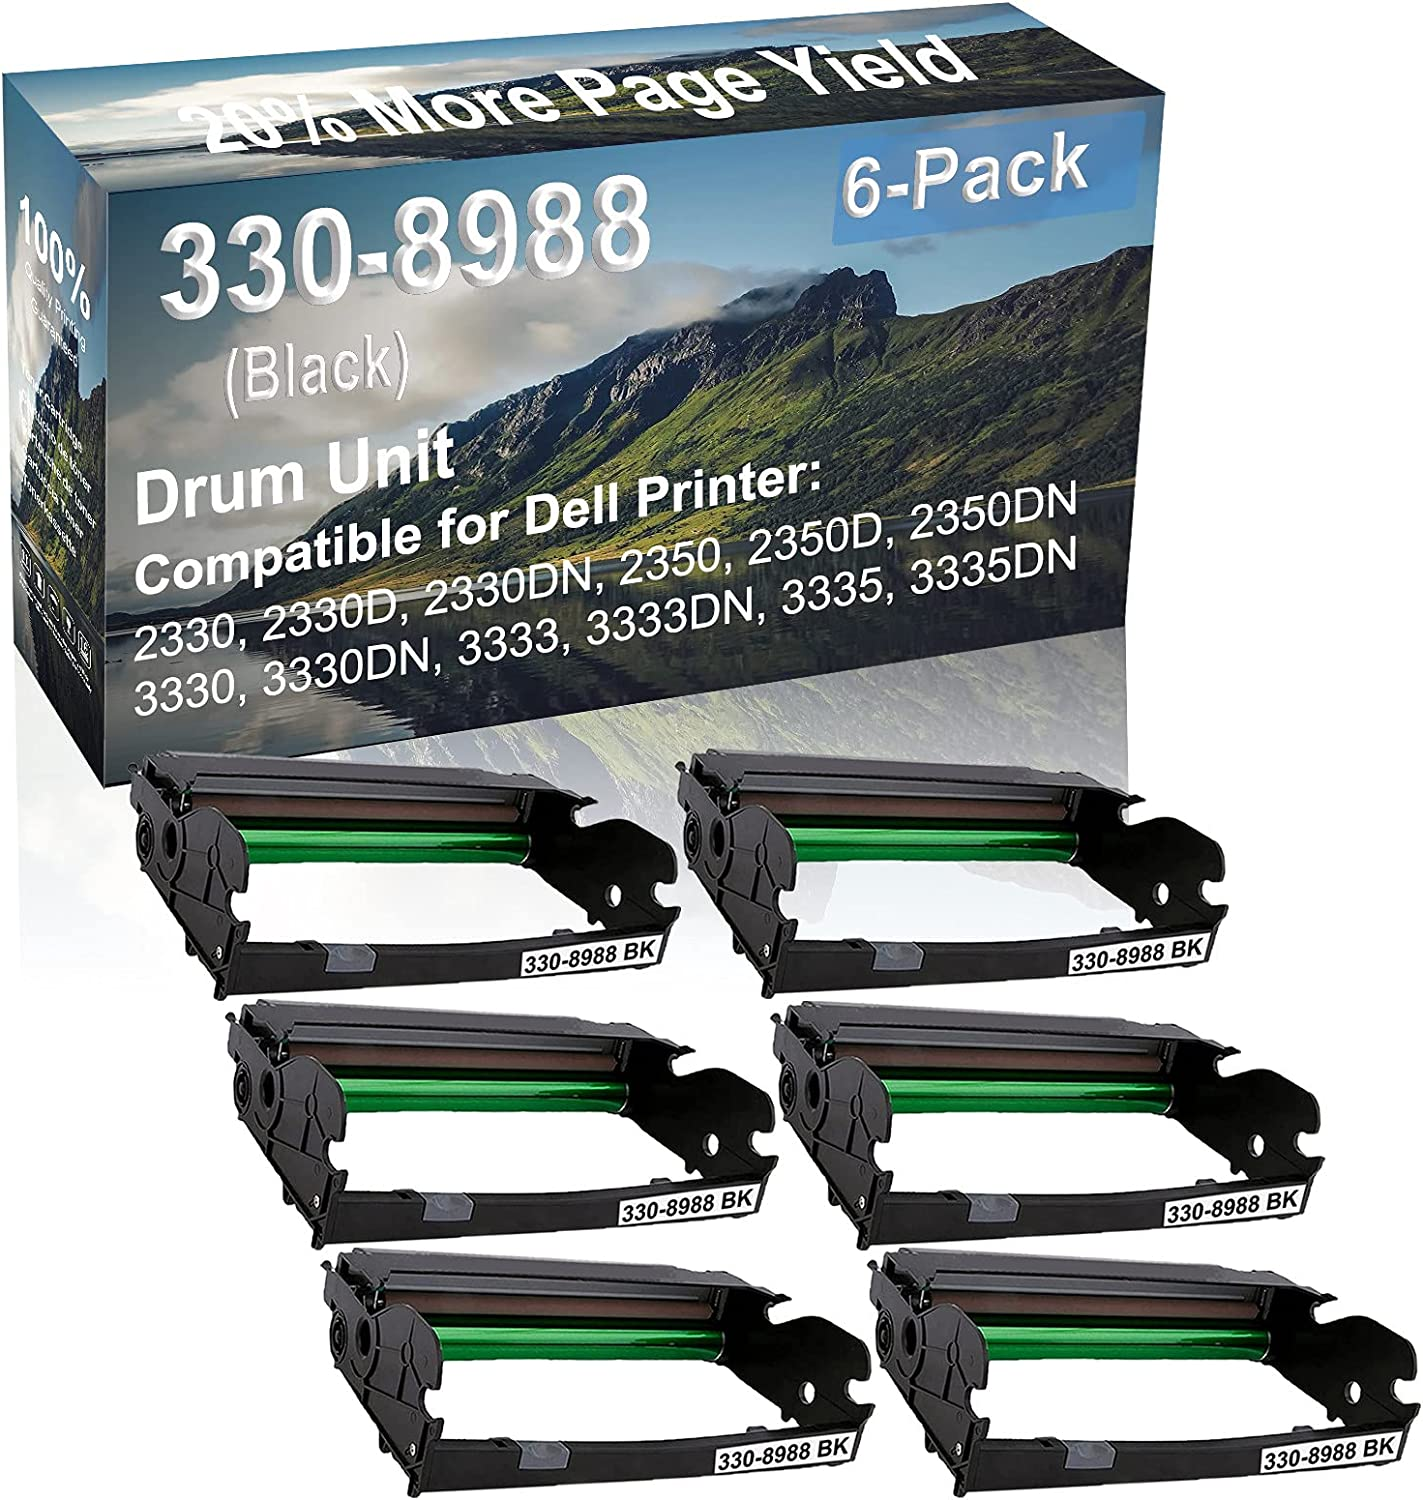 6-Pack Compatible 330-8988 Drum Kit use for Dell 2330, 2330D, 2330DN, 2350 Printer (Black)